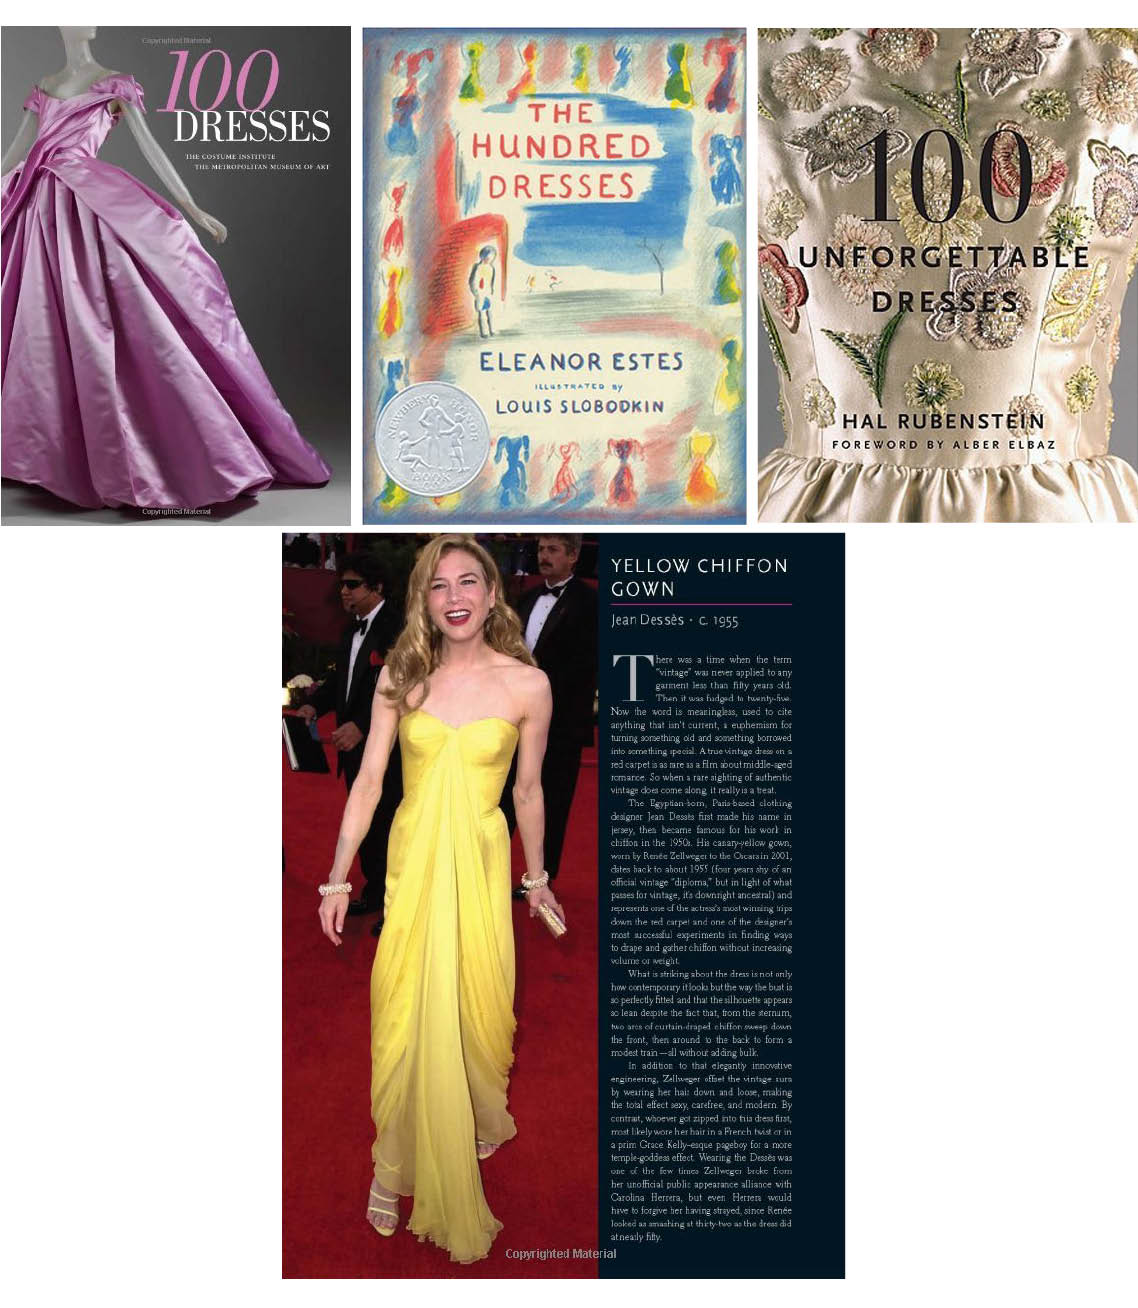 Reading List- 100 Dresses